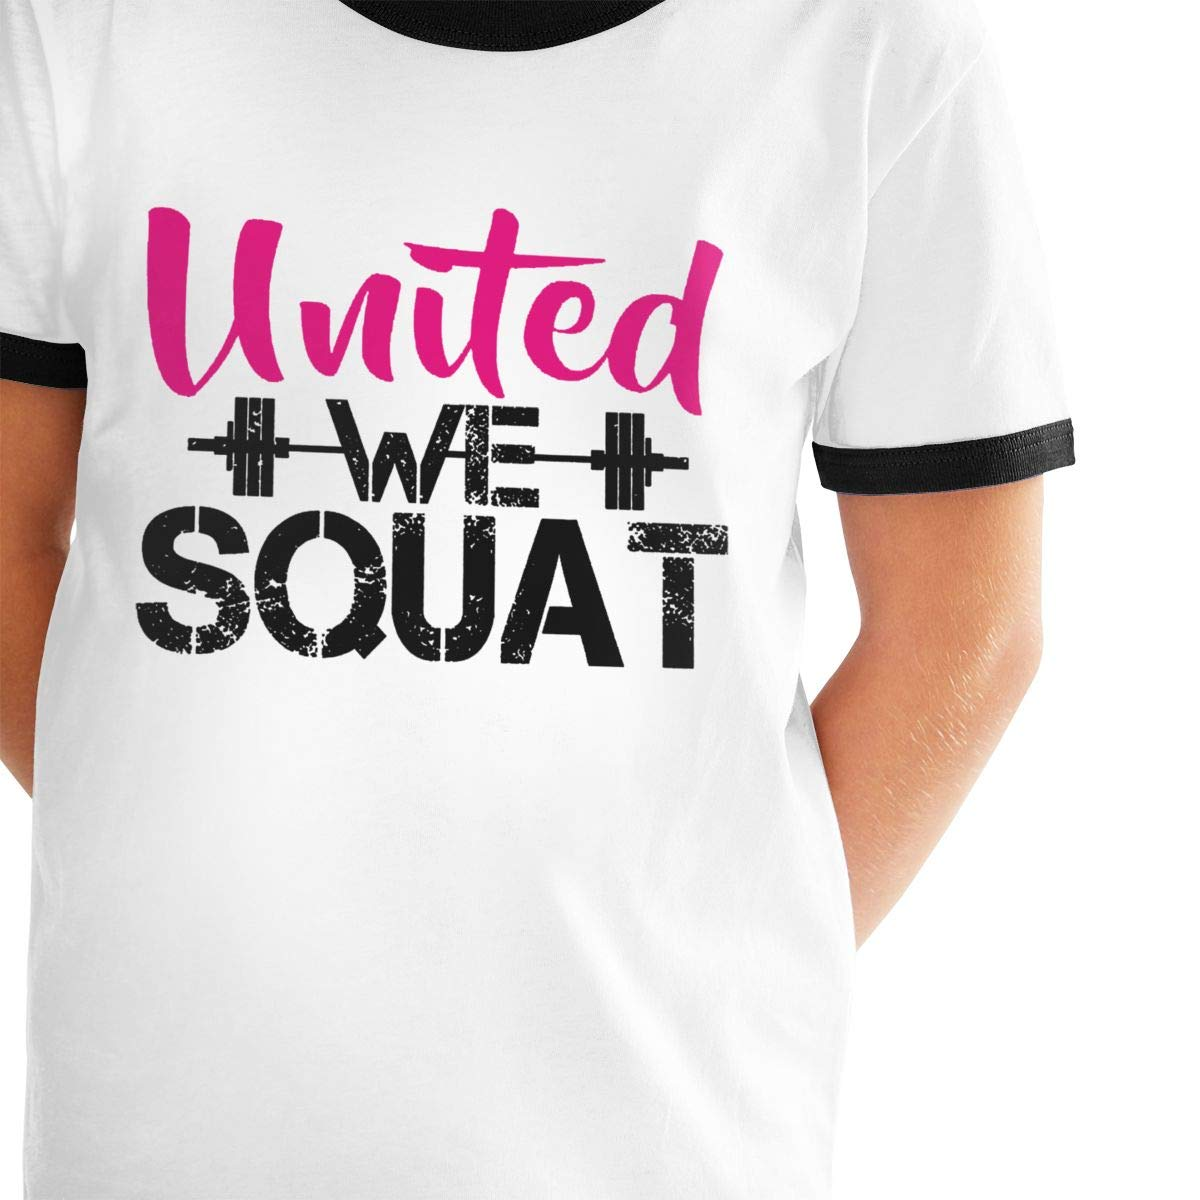 United We Squat Casual Tunic Tops Short Sleeve Loose Soft Blouse T-Shirt for Boys Girls